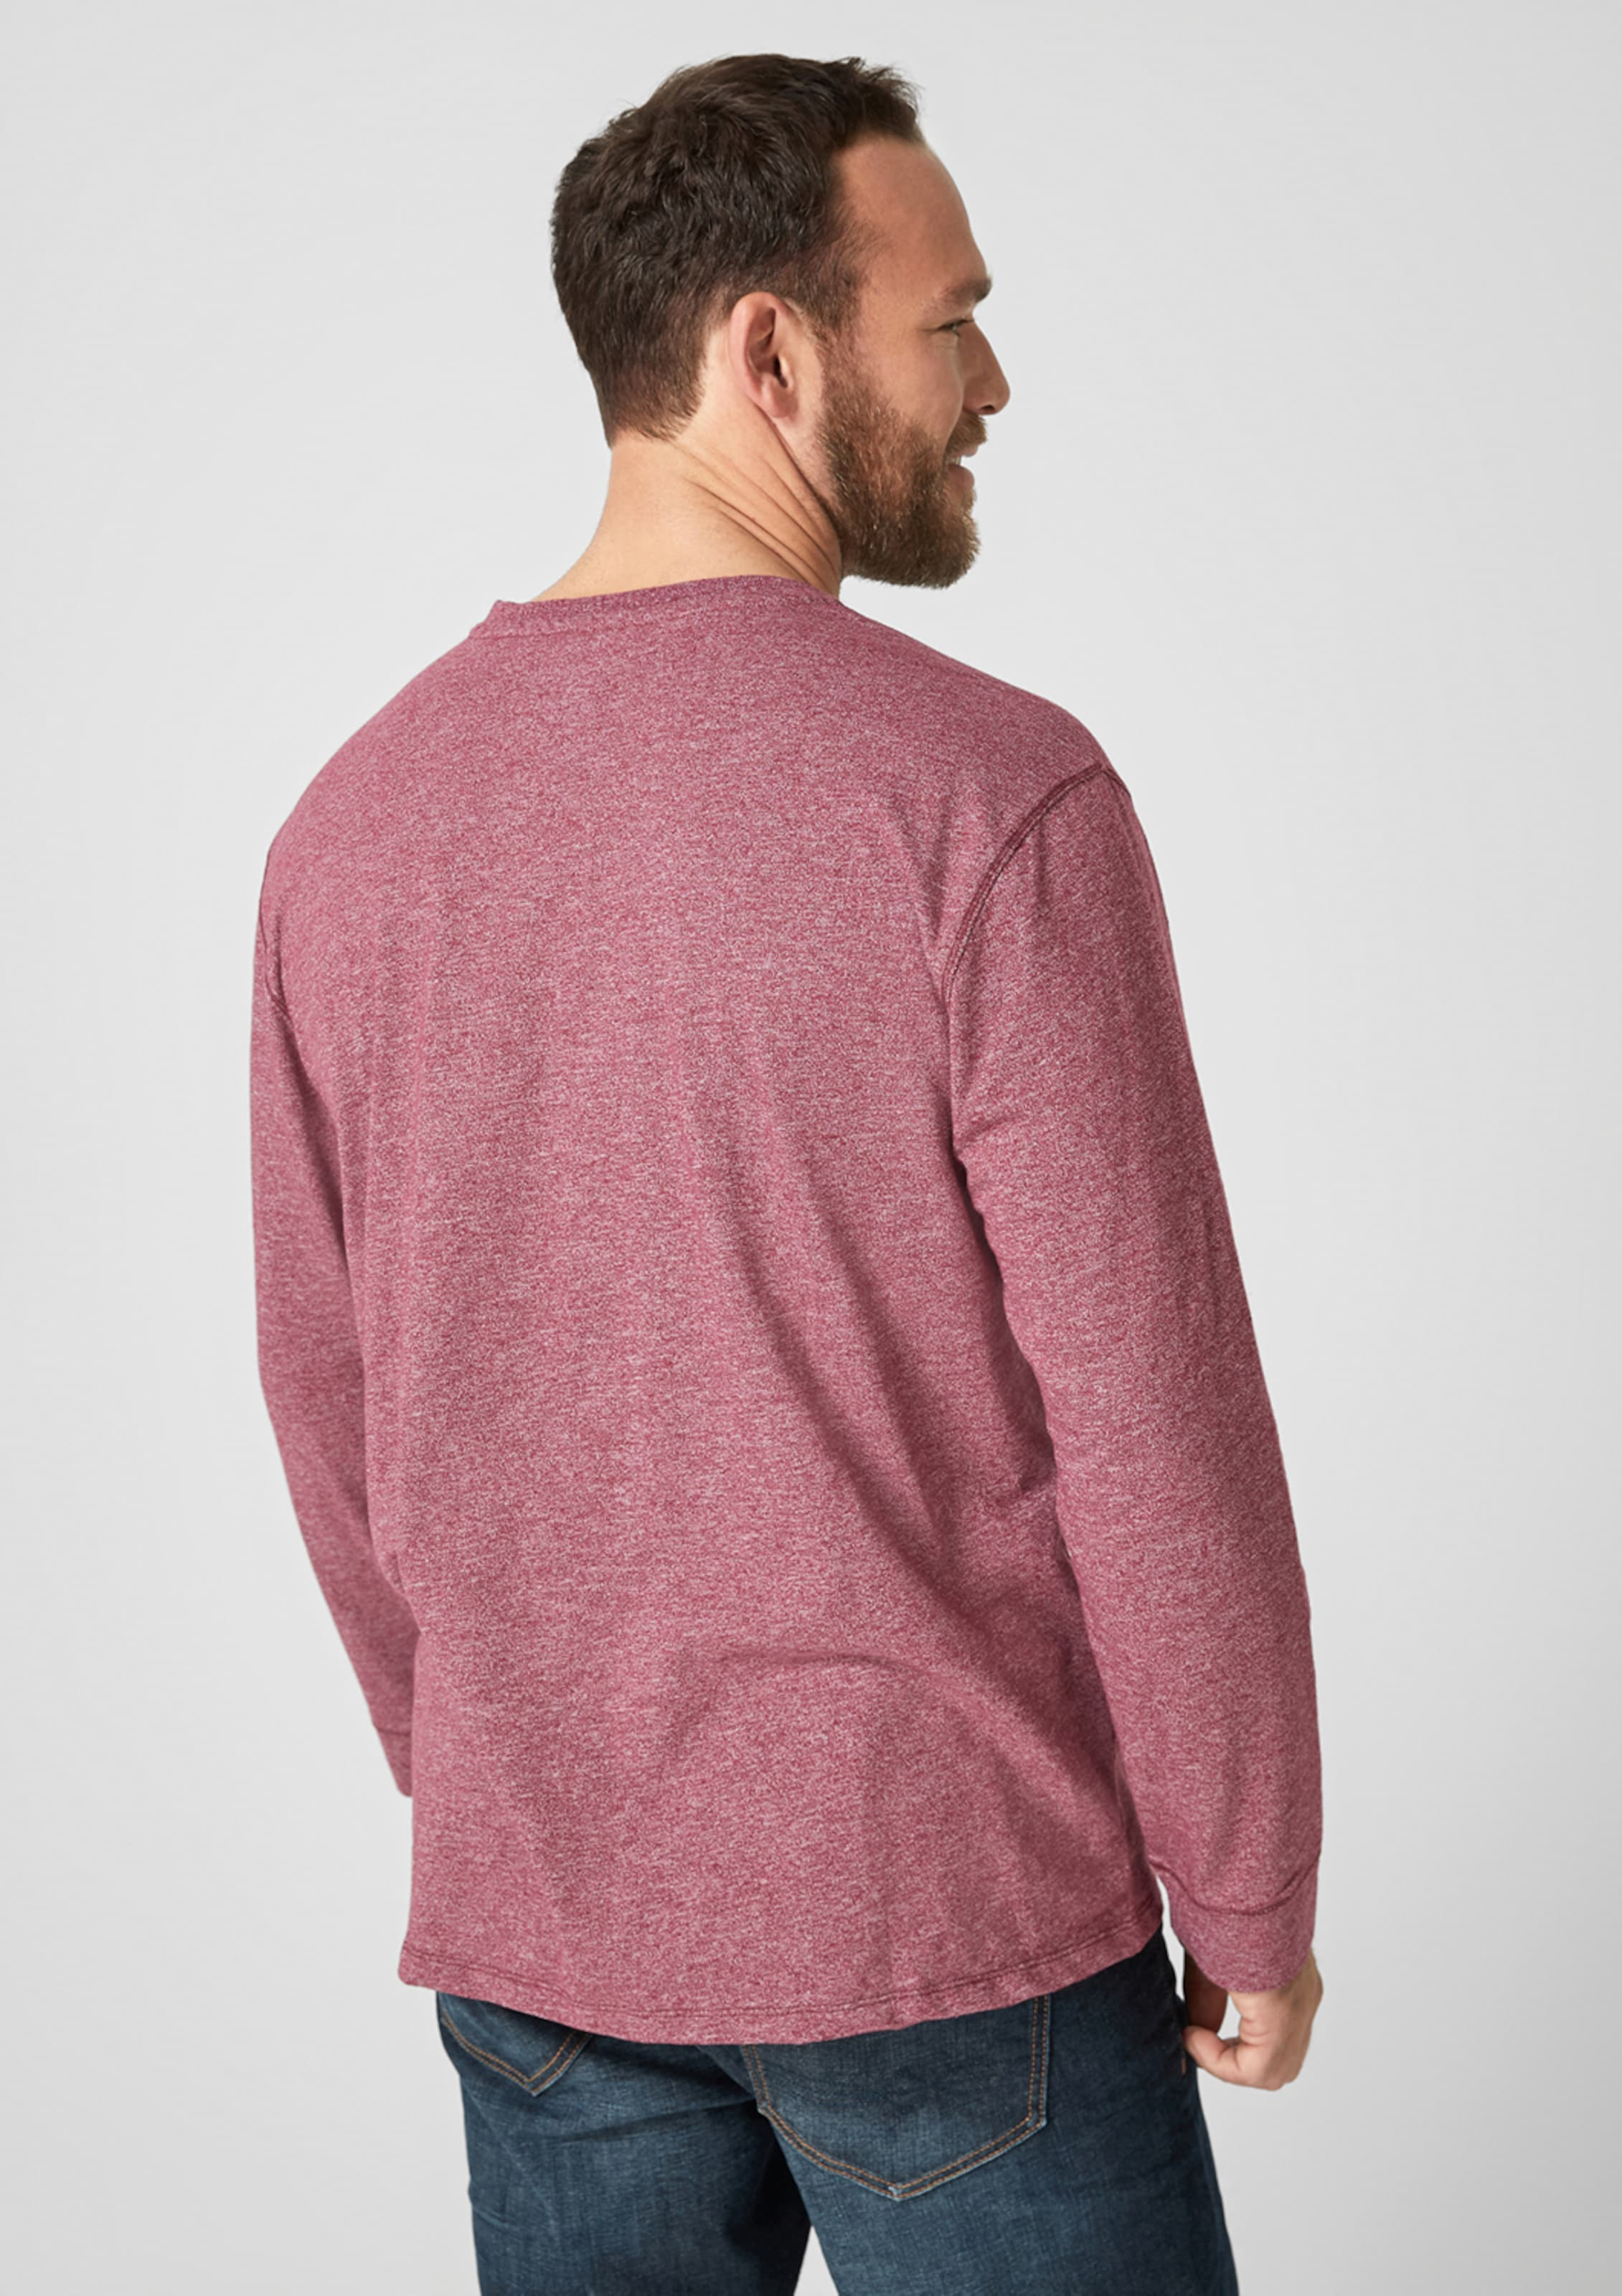 oliver Shirt S S oliver In PinkWeiß uK1lc3JTF5